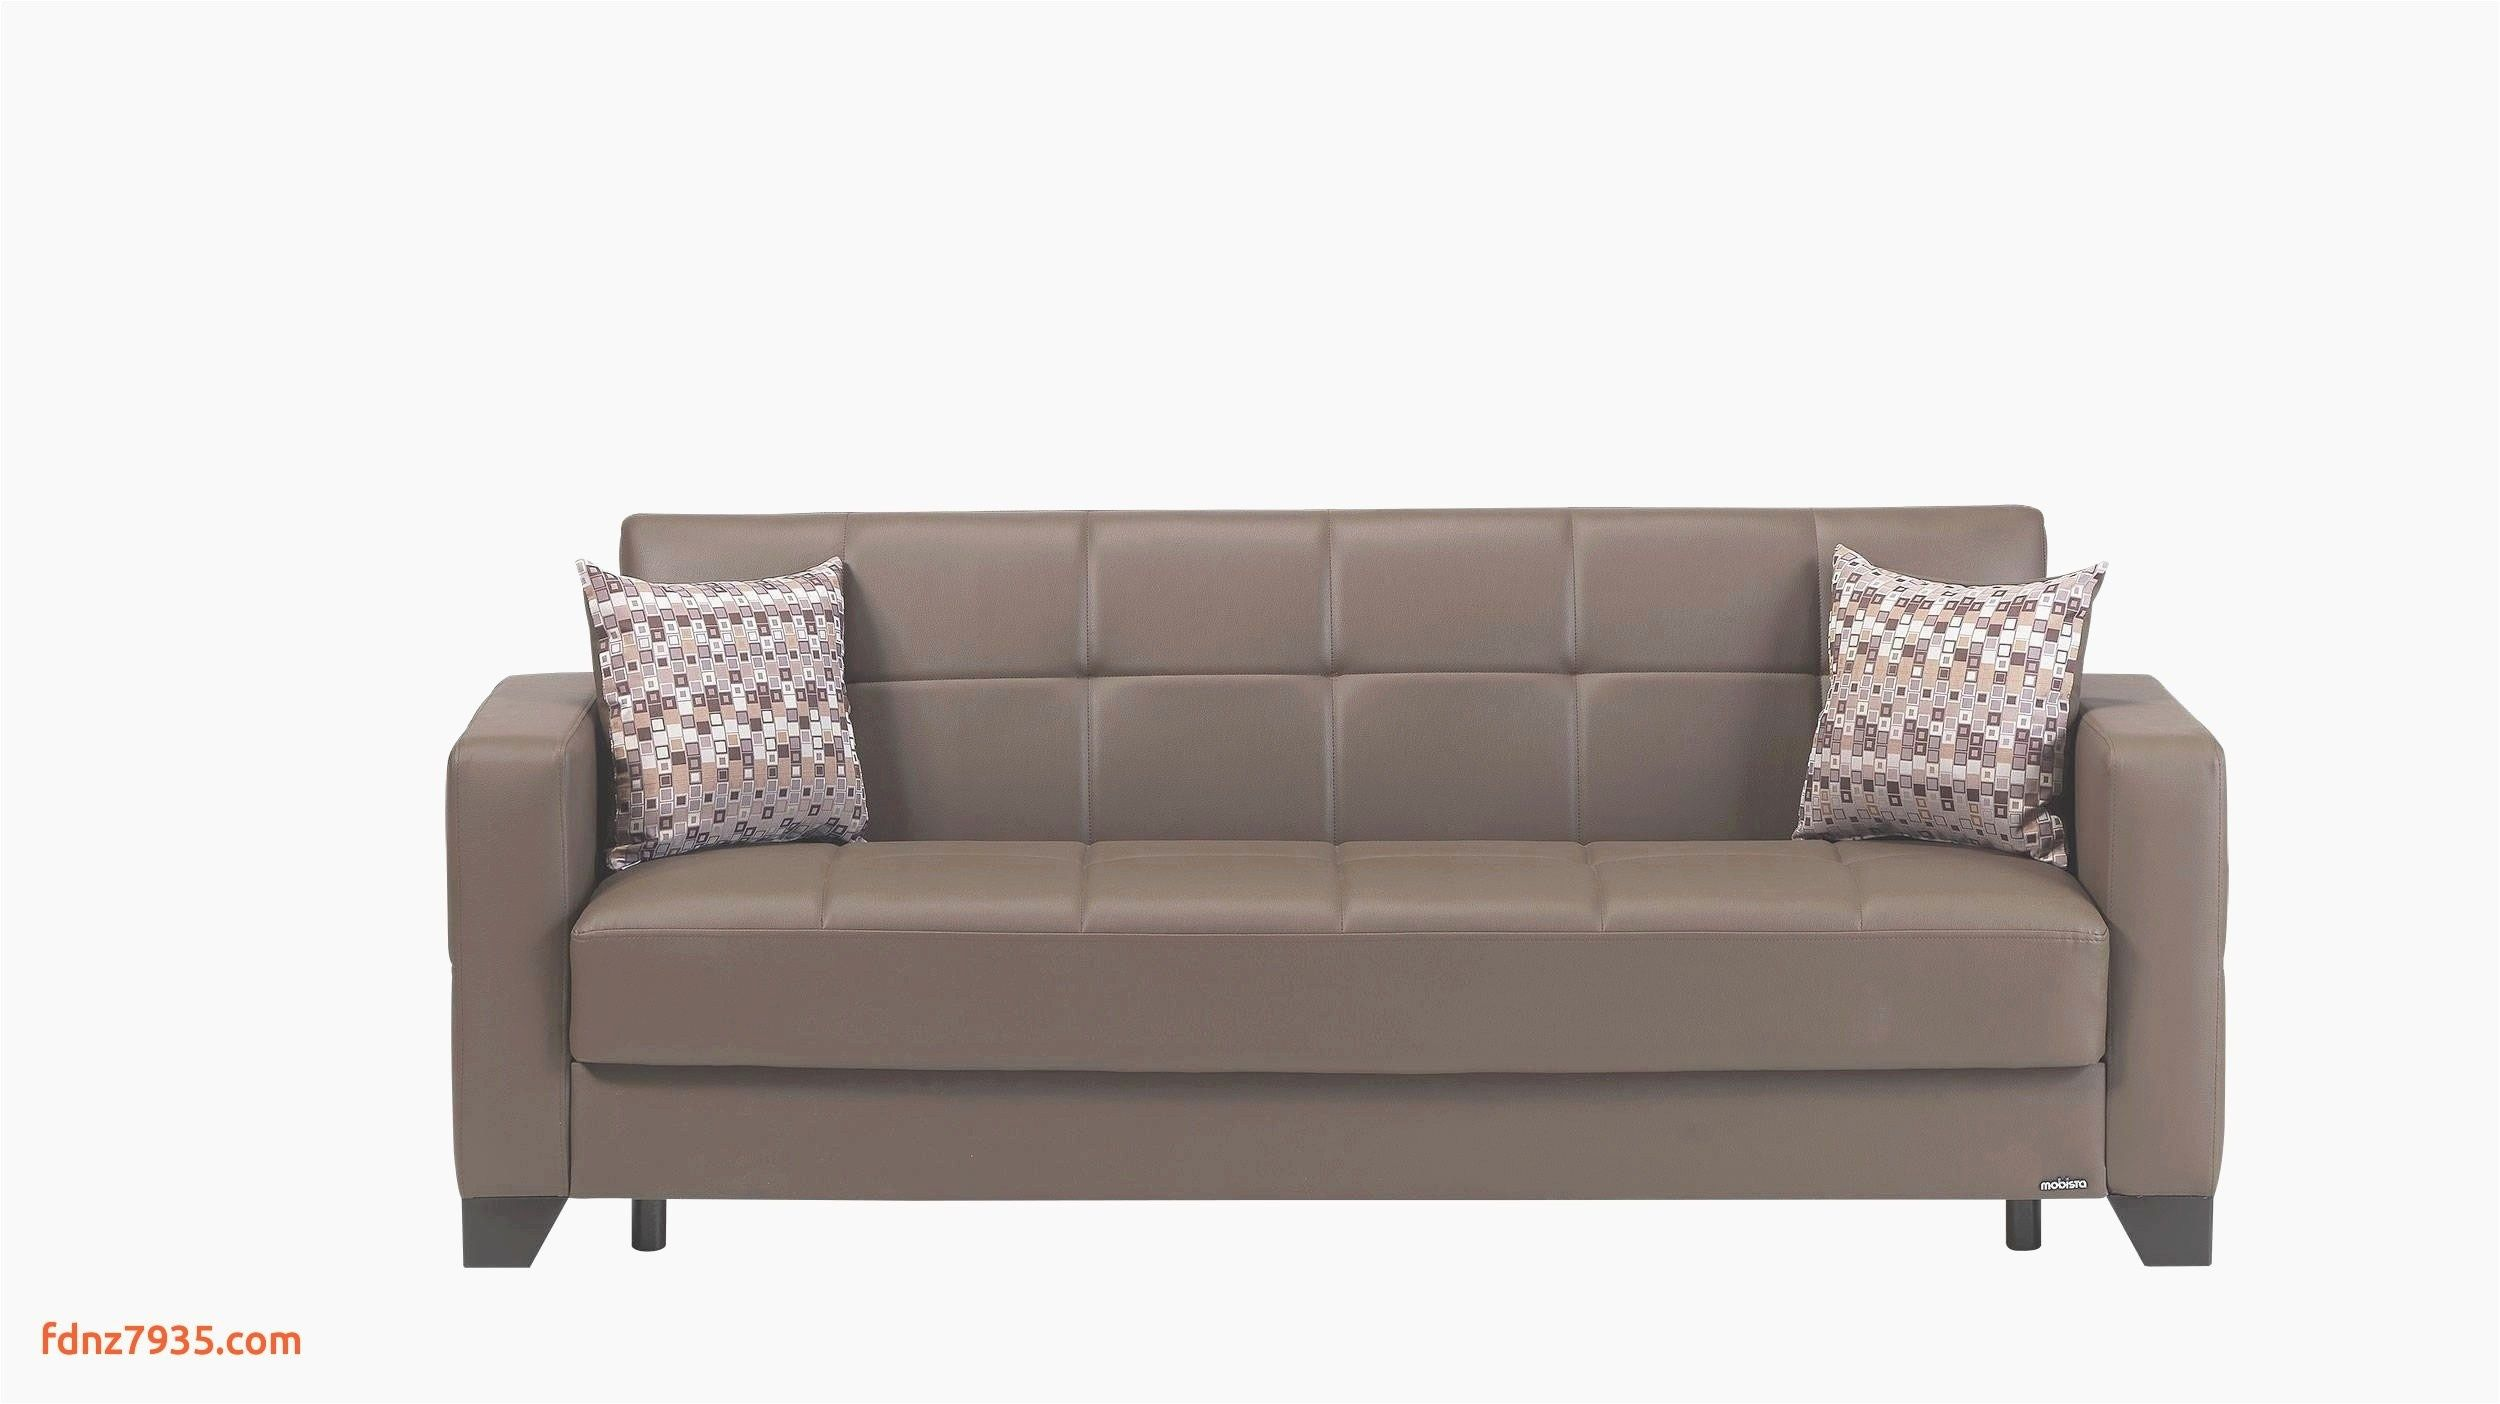 american leather sleeper sofa price – Home and Textiles ...